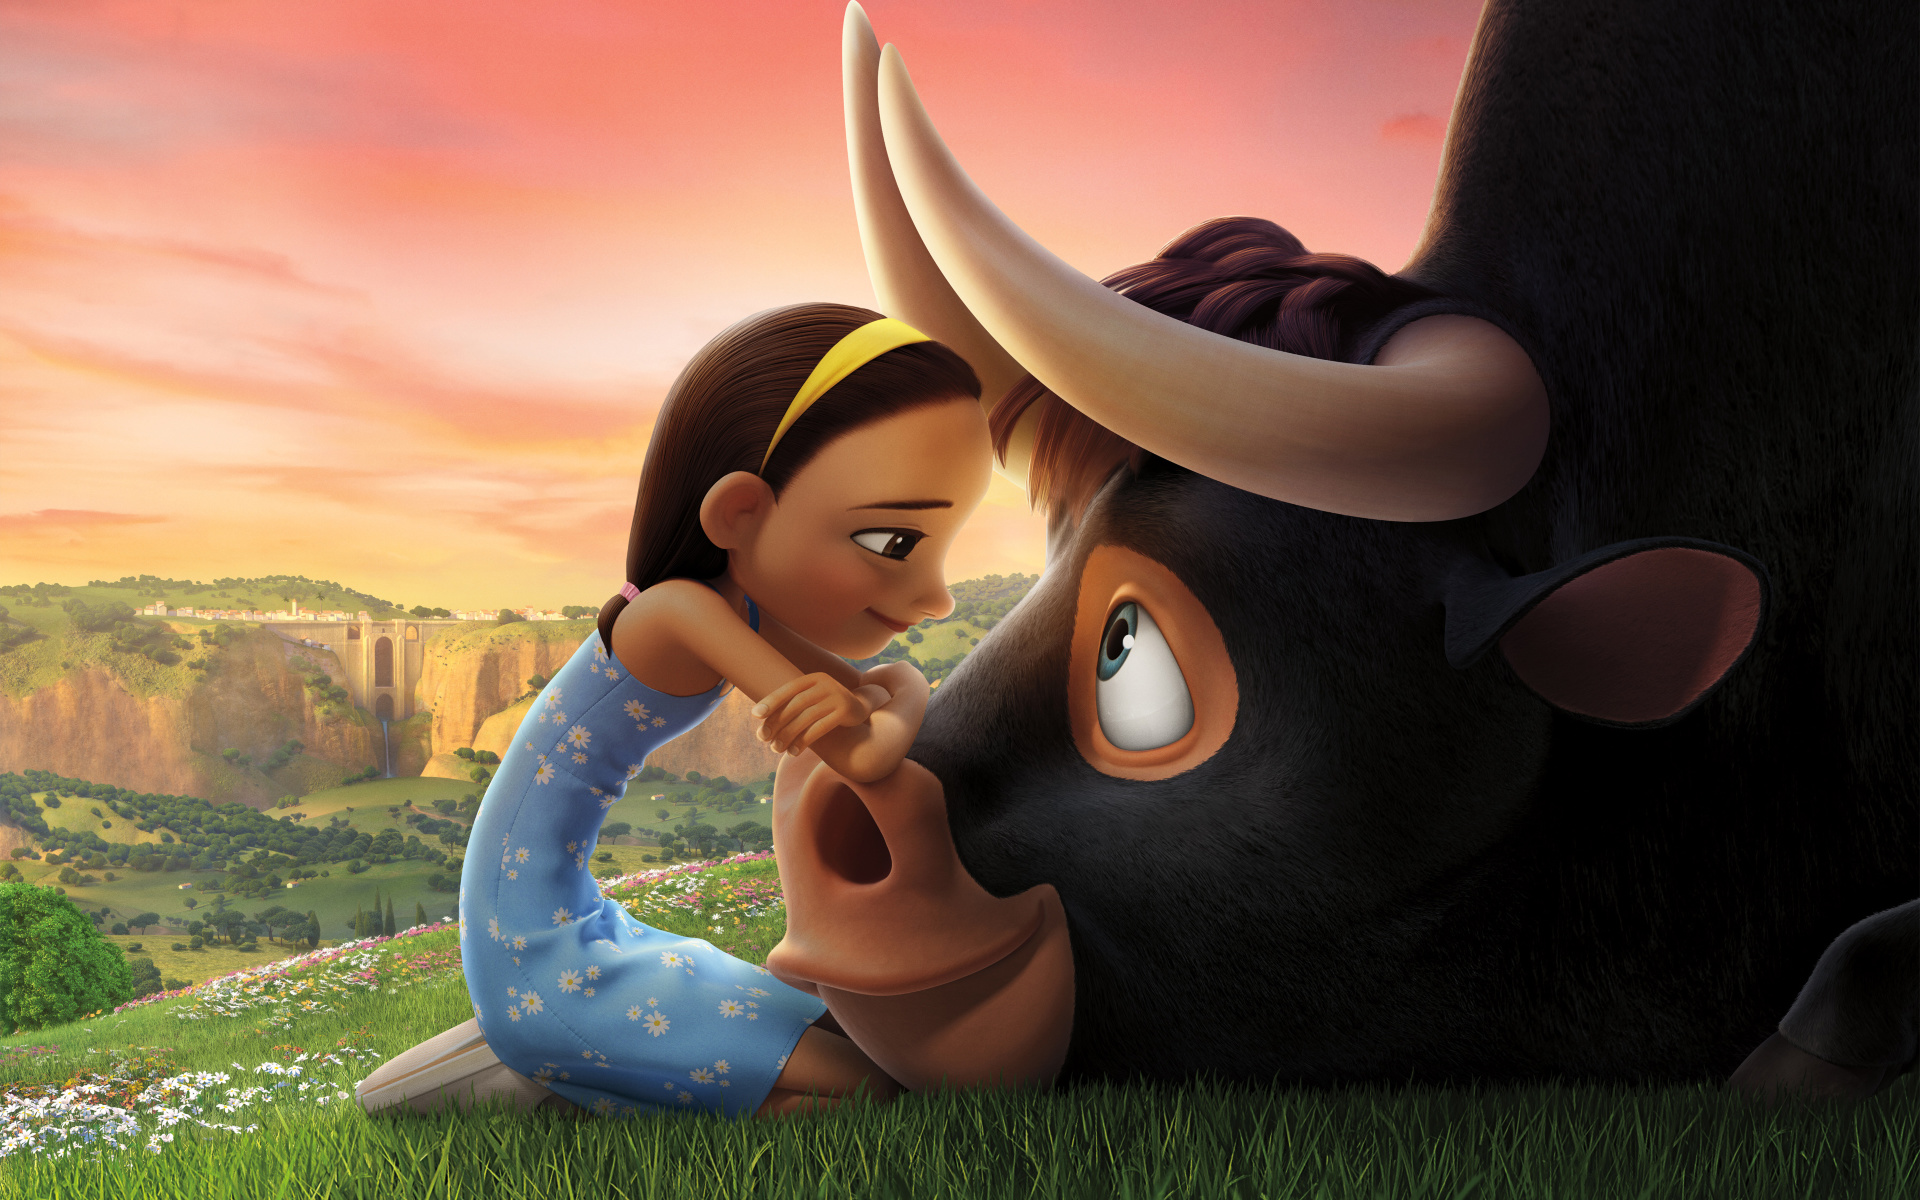 2. FERDINAND  Fox  Another animated film made it to the second place, directed by Brazilian filmmaker Carlos Saldanha ( Ice Age ). The movie about a giant bull with a big heart made $77 million in the local box office.